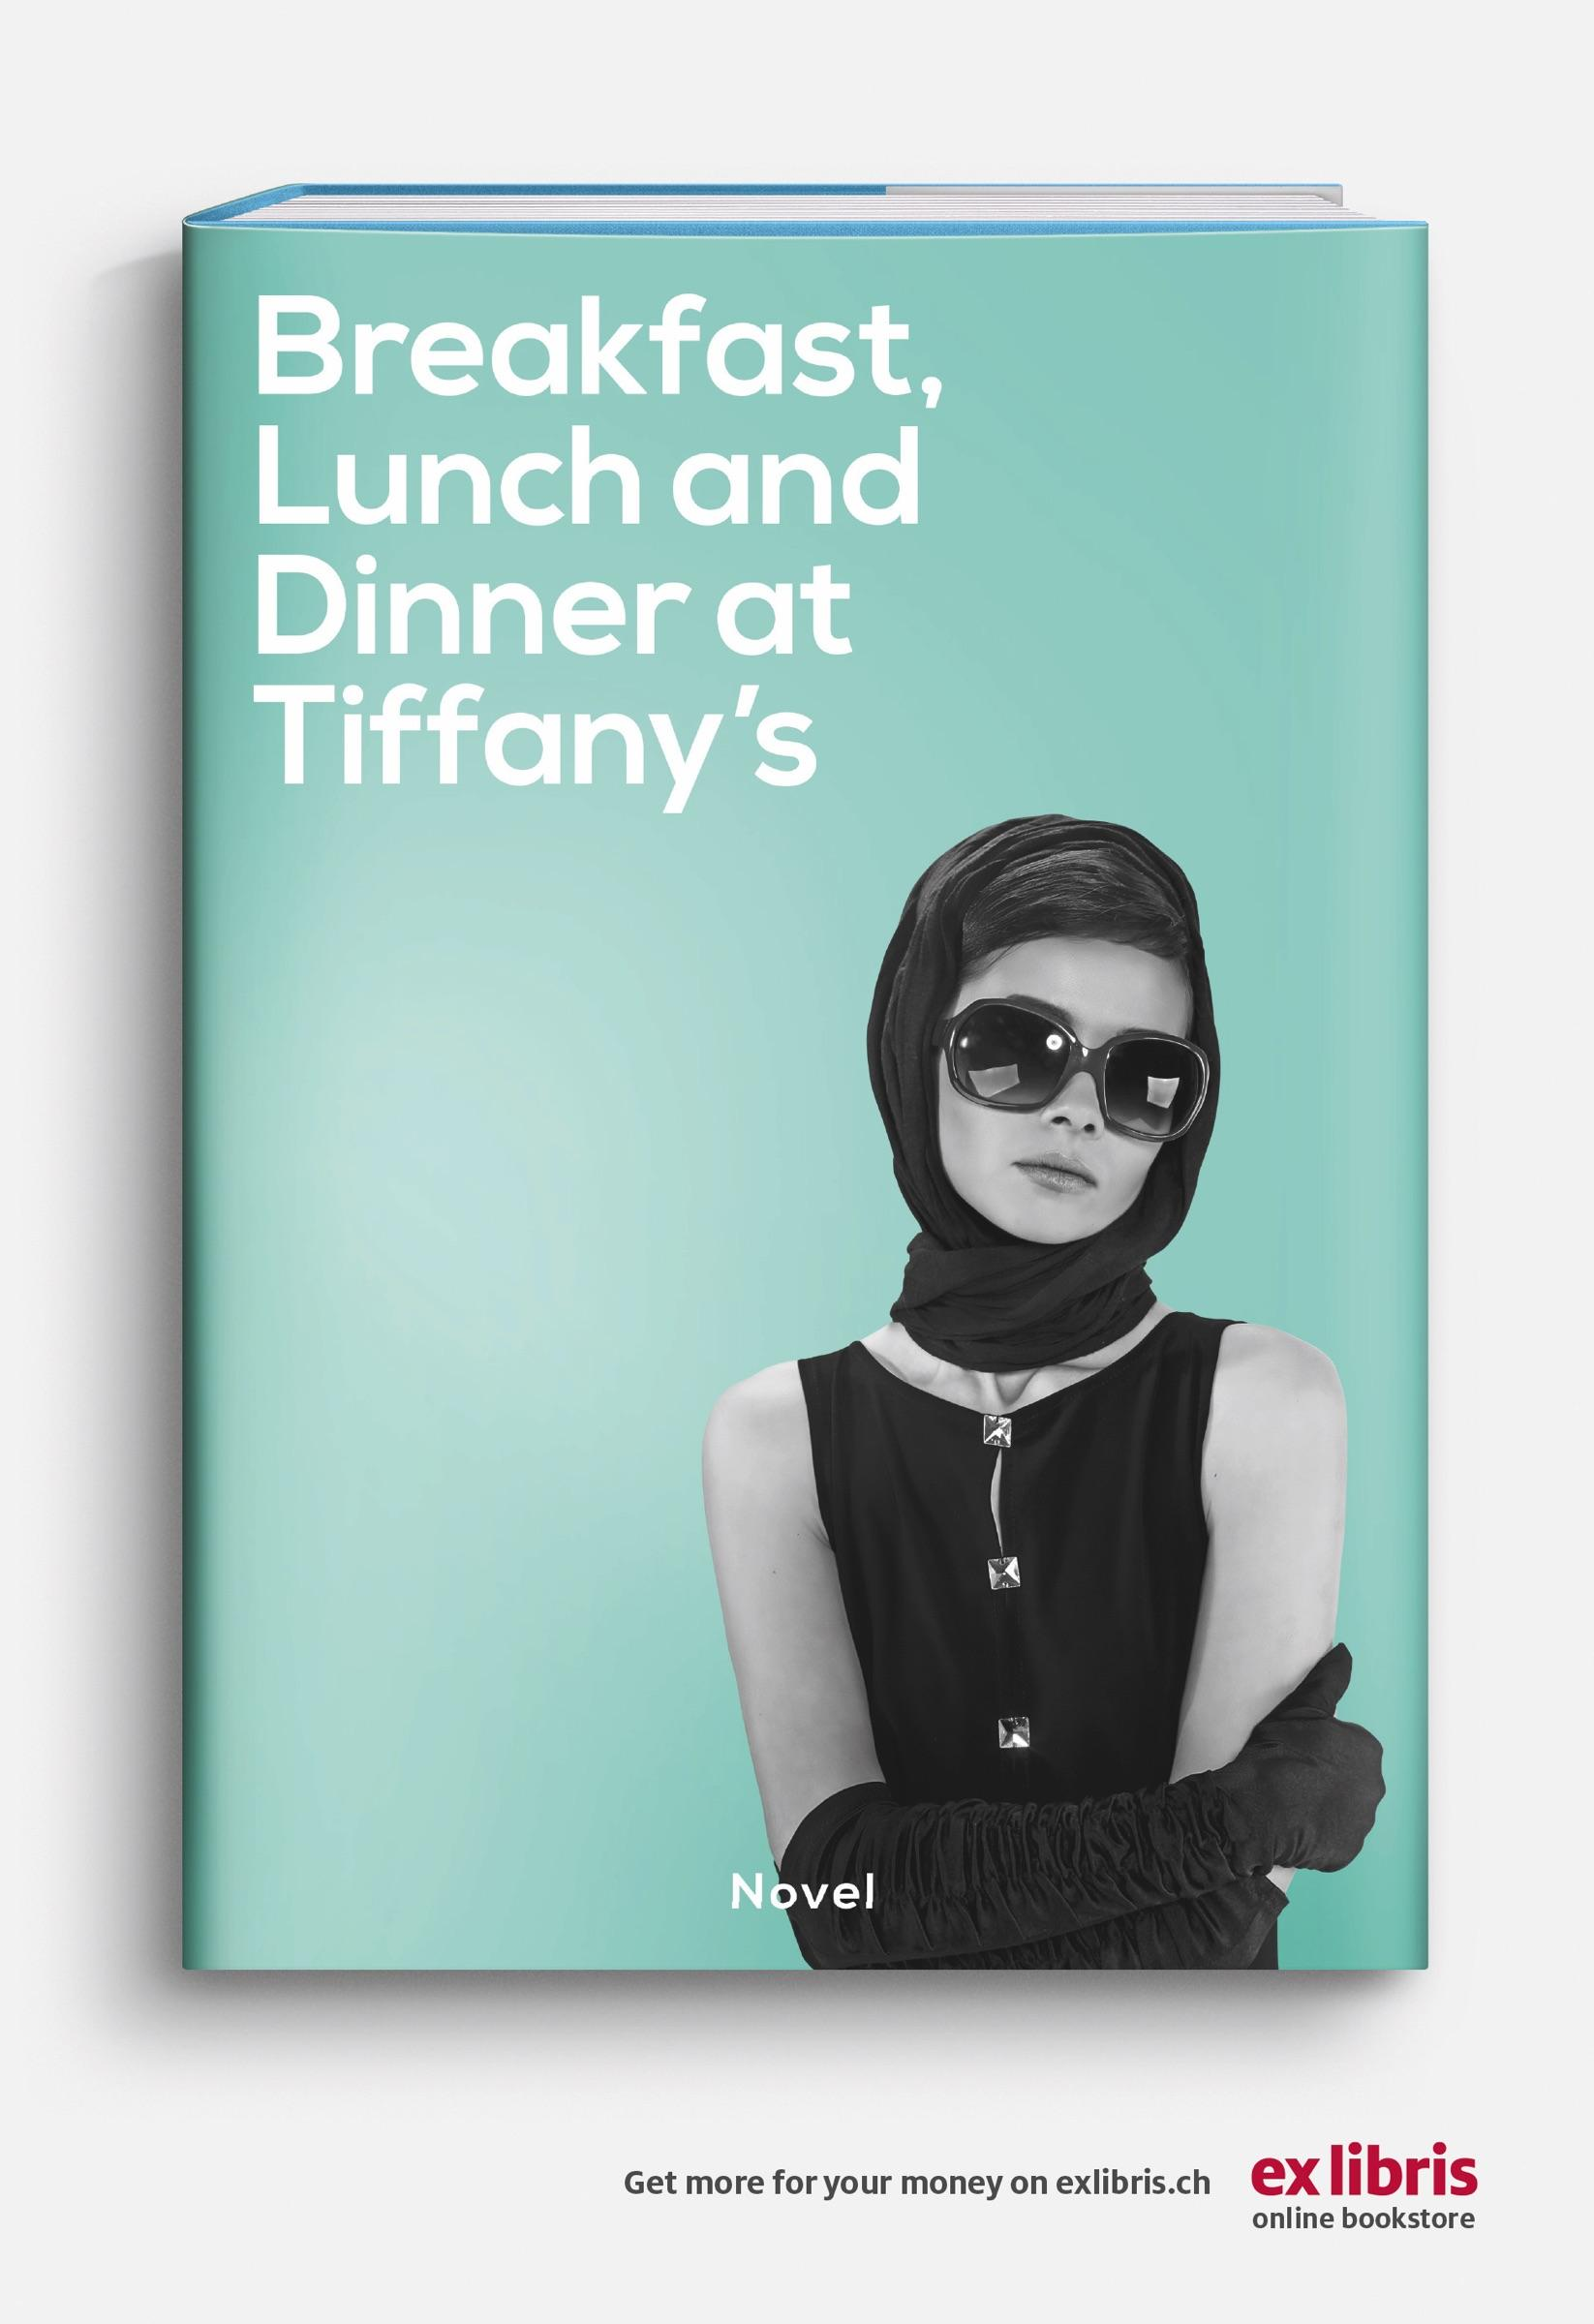 Ex Libris Print Ad - Breakfast, Lunch And Dinner At Tiffany's